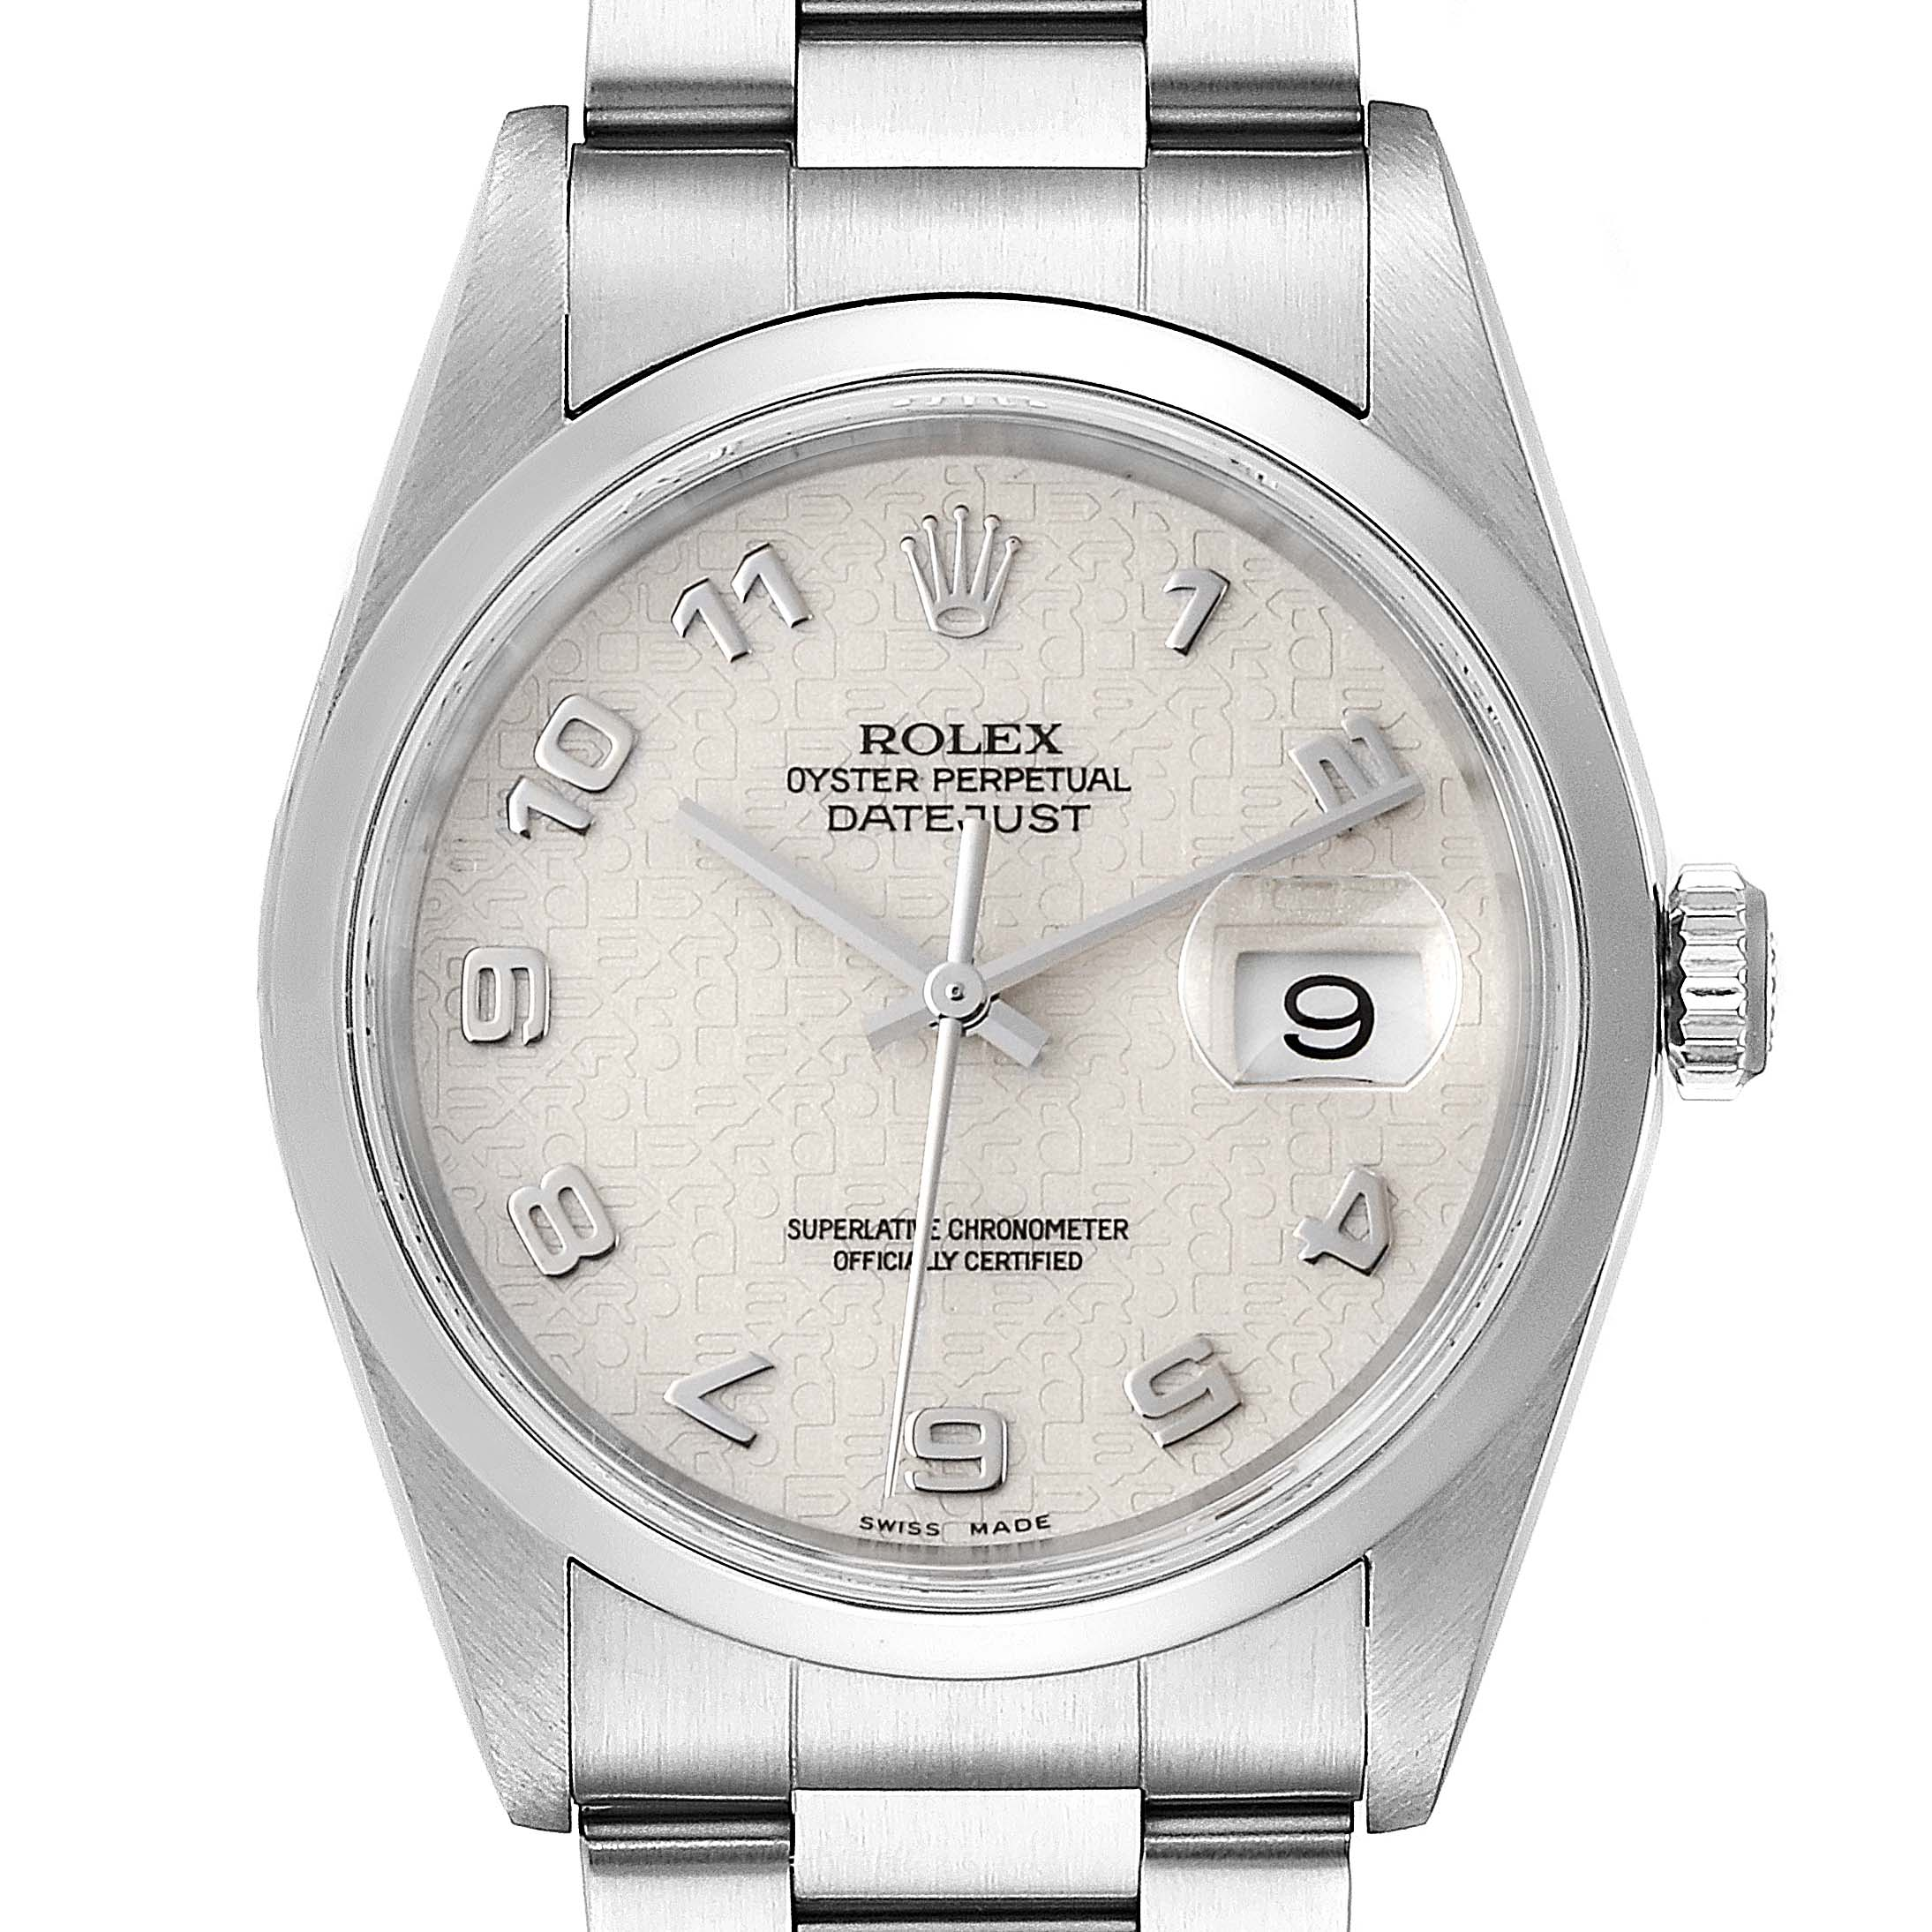 Rolex Datejust Anniversary Jubilee Dial Steel Mens Watch 16200 Box Papers